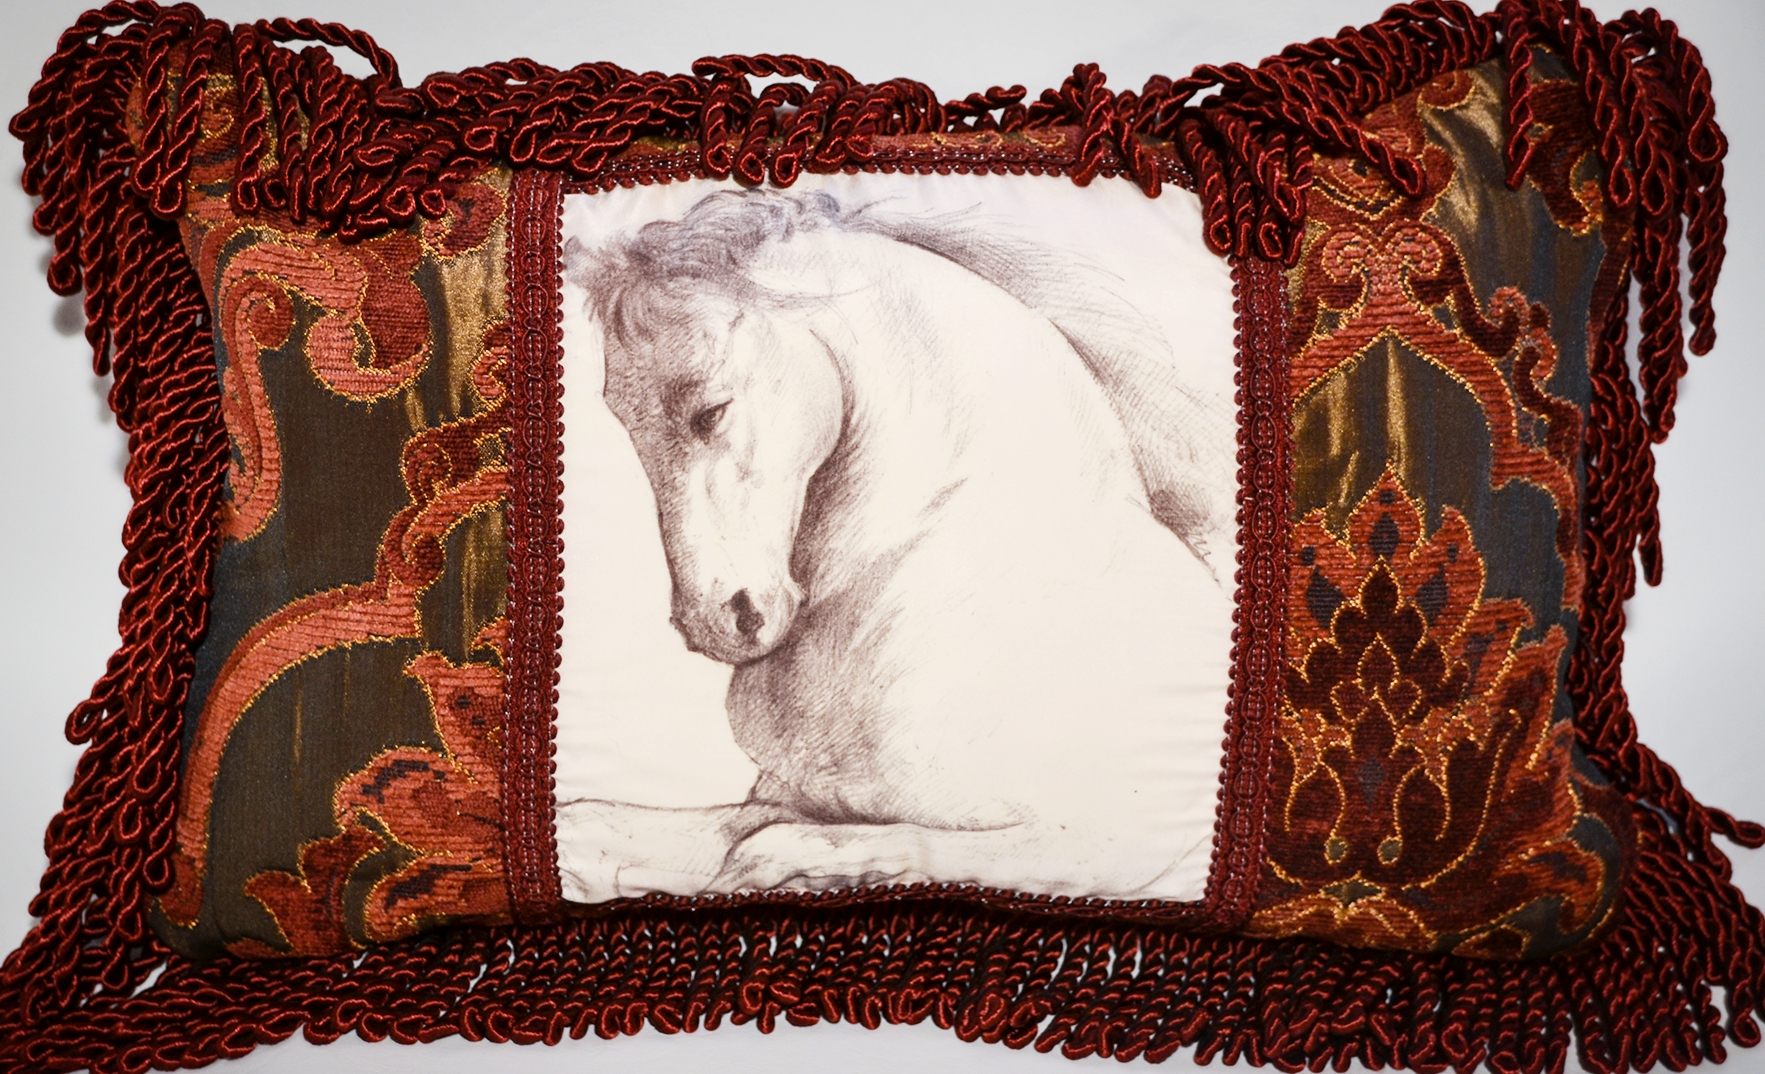 "Image of a horse printed on silk, framed in a beautiful burgundy brocade and satin fringes.  This cushion dimensions are 18"" x 12"" with down feather cushion insert."